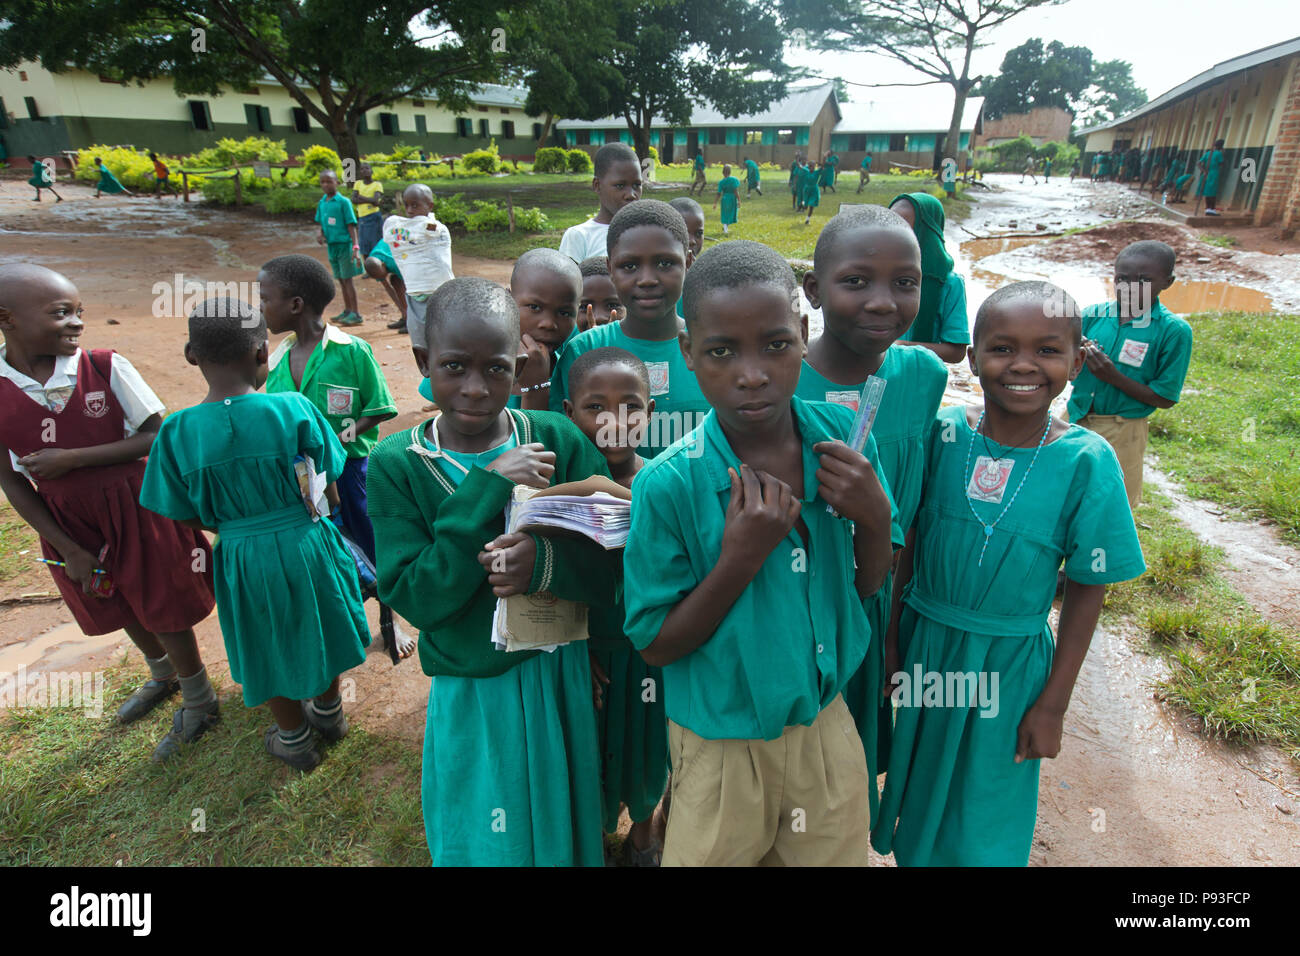 Bombo, Uganda - Primary school-uniformed students are standing in the schoolyard of St. Joseph's Bombo mixed primary school. - Stock Image